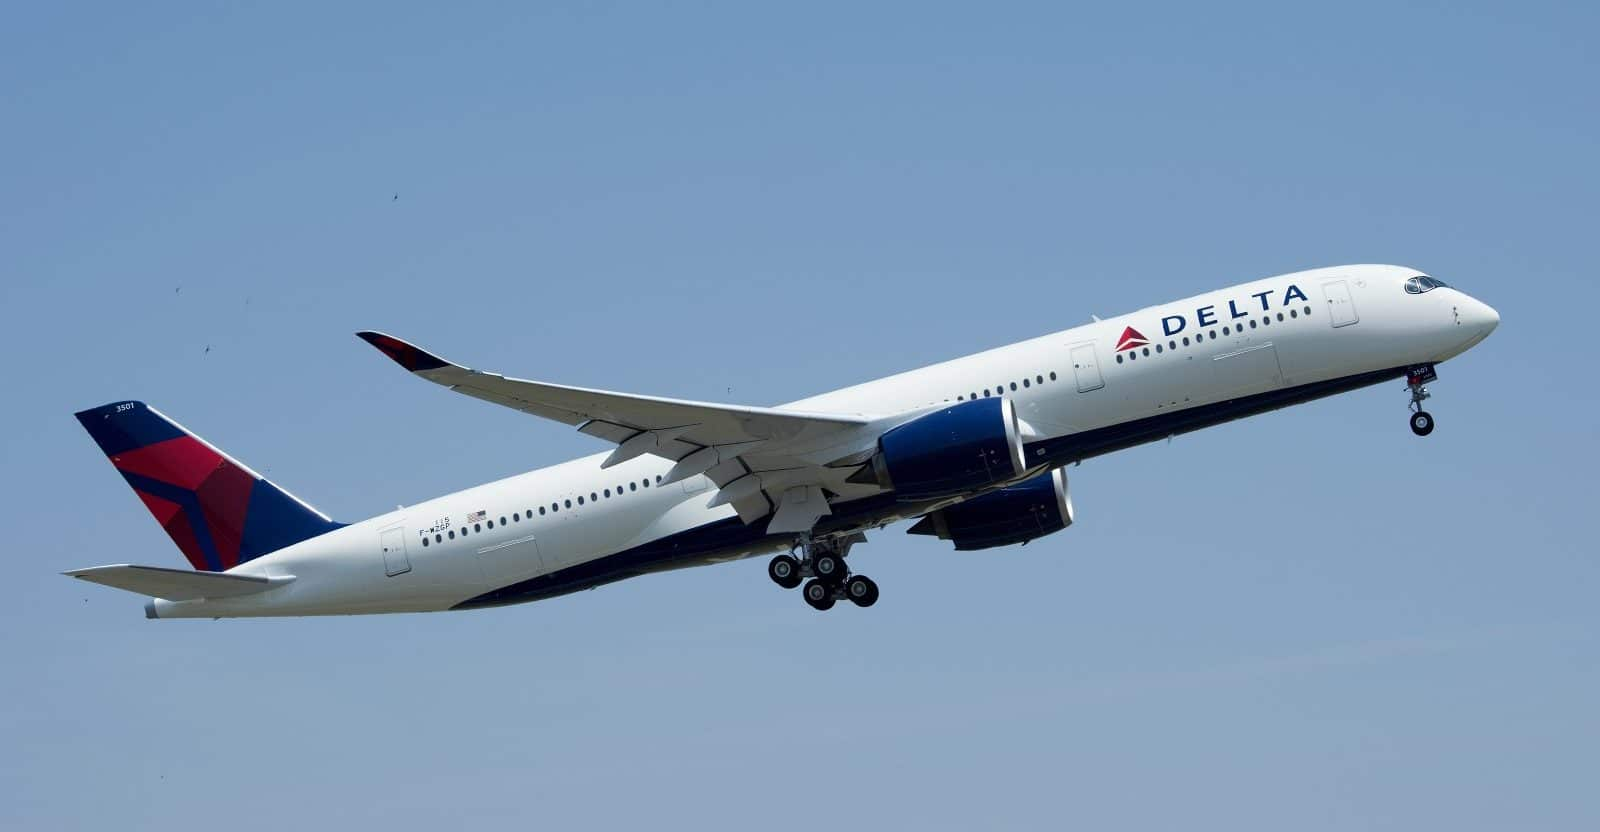 Guide to Delta Airlines & SkyMiles (2021)